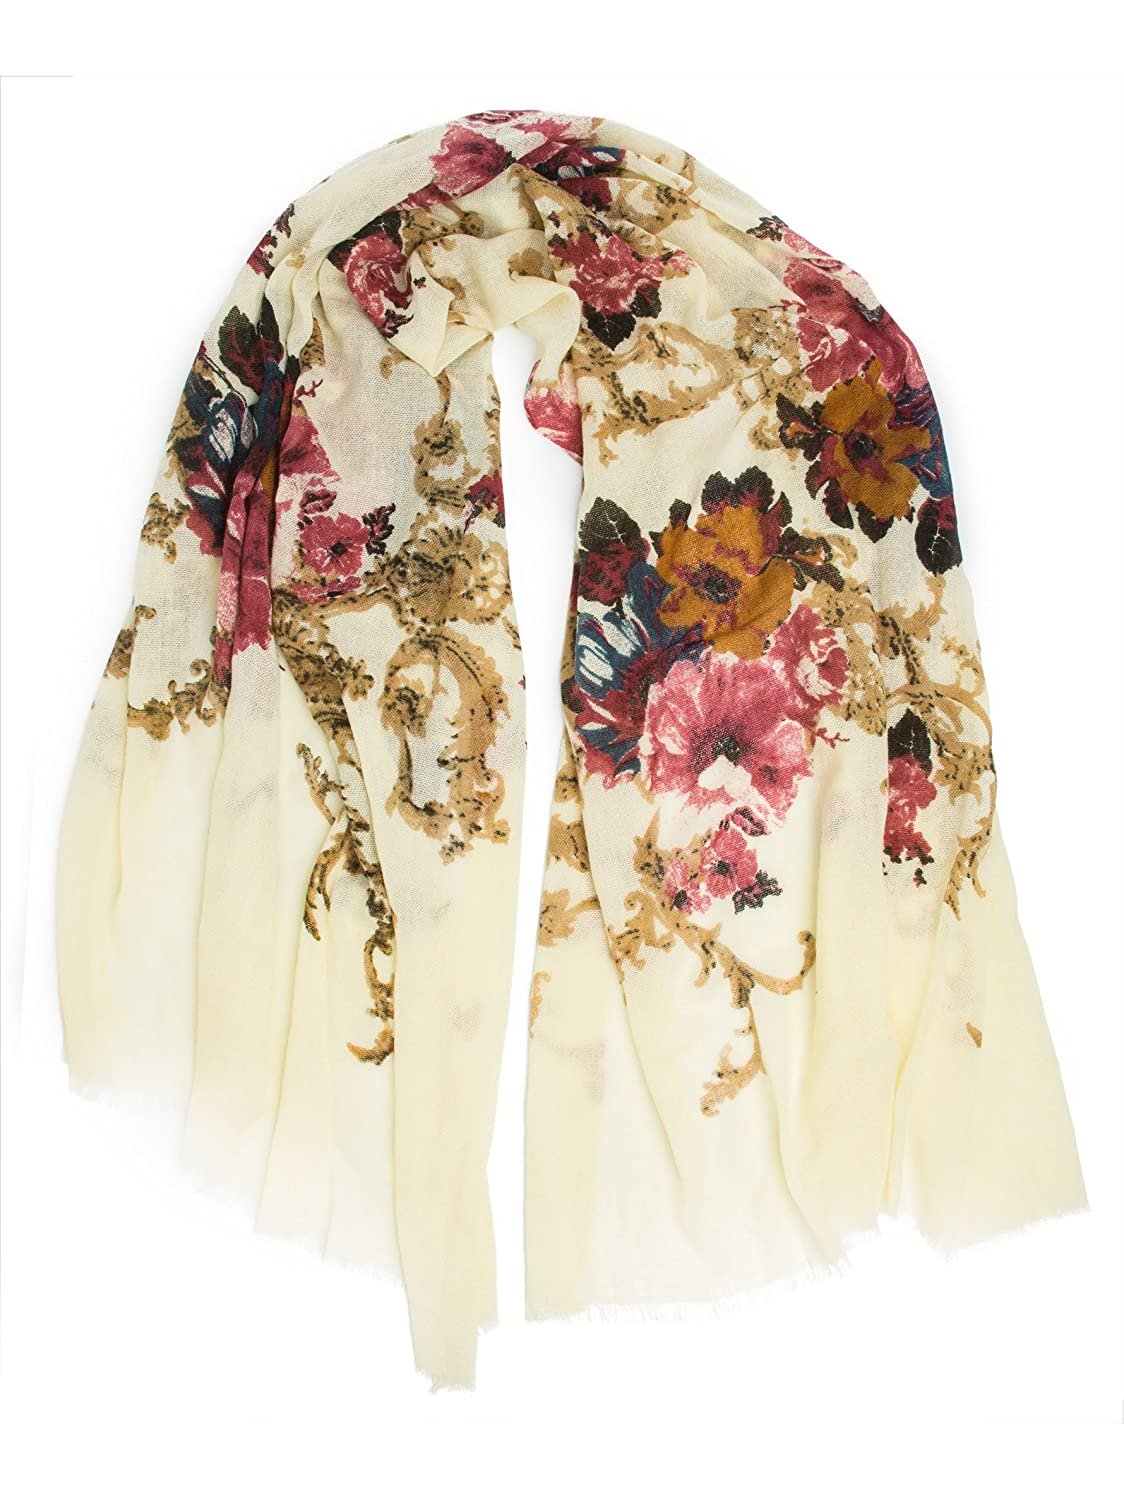 1920s Accessories | Great Gatsby Accessories Guide Eleanor blanket scarf oversized winter scarf floral scarf $26.95 AT vintagedancer.com